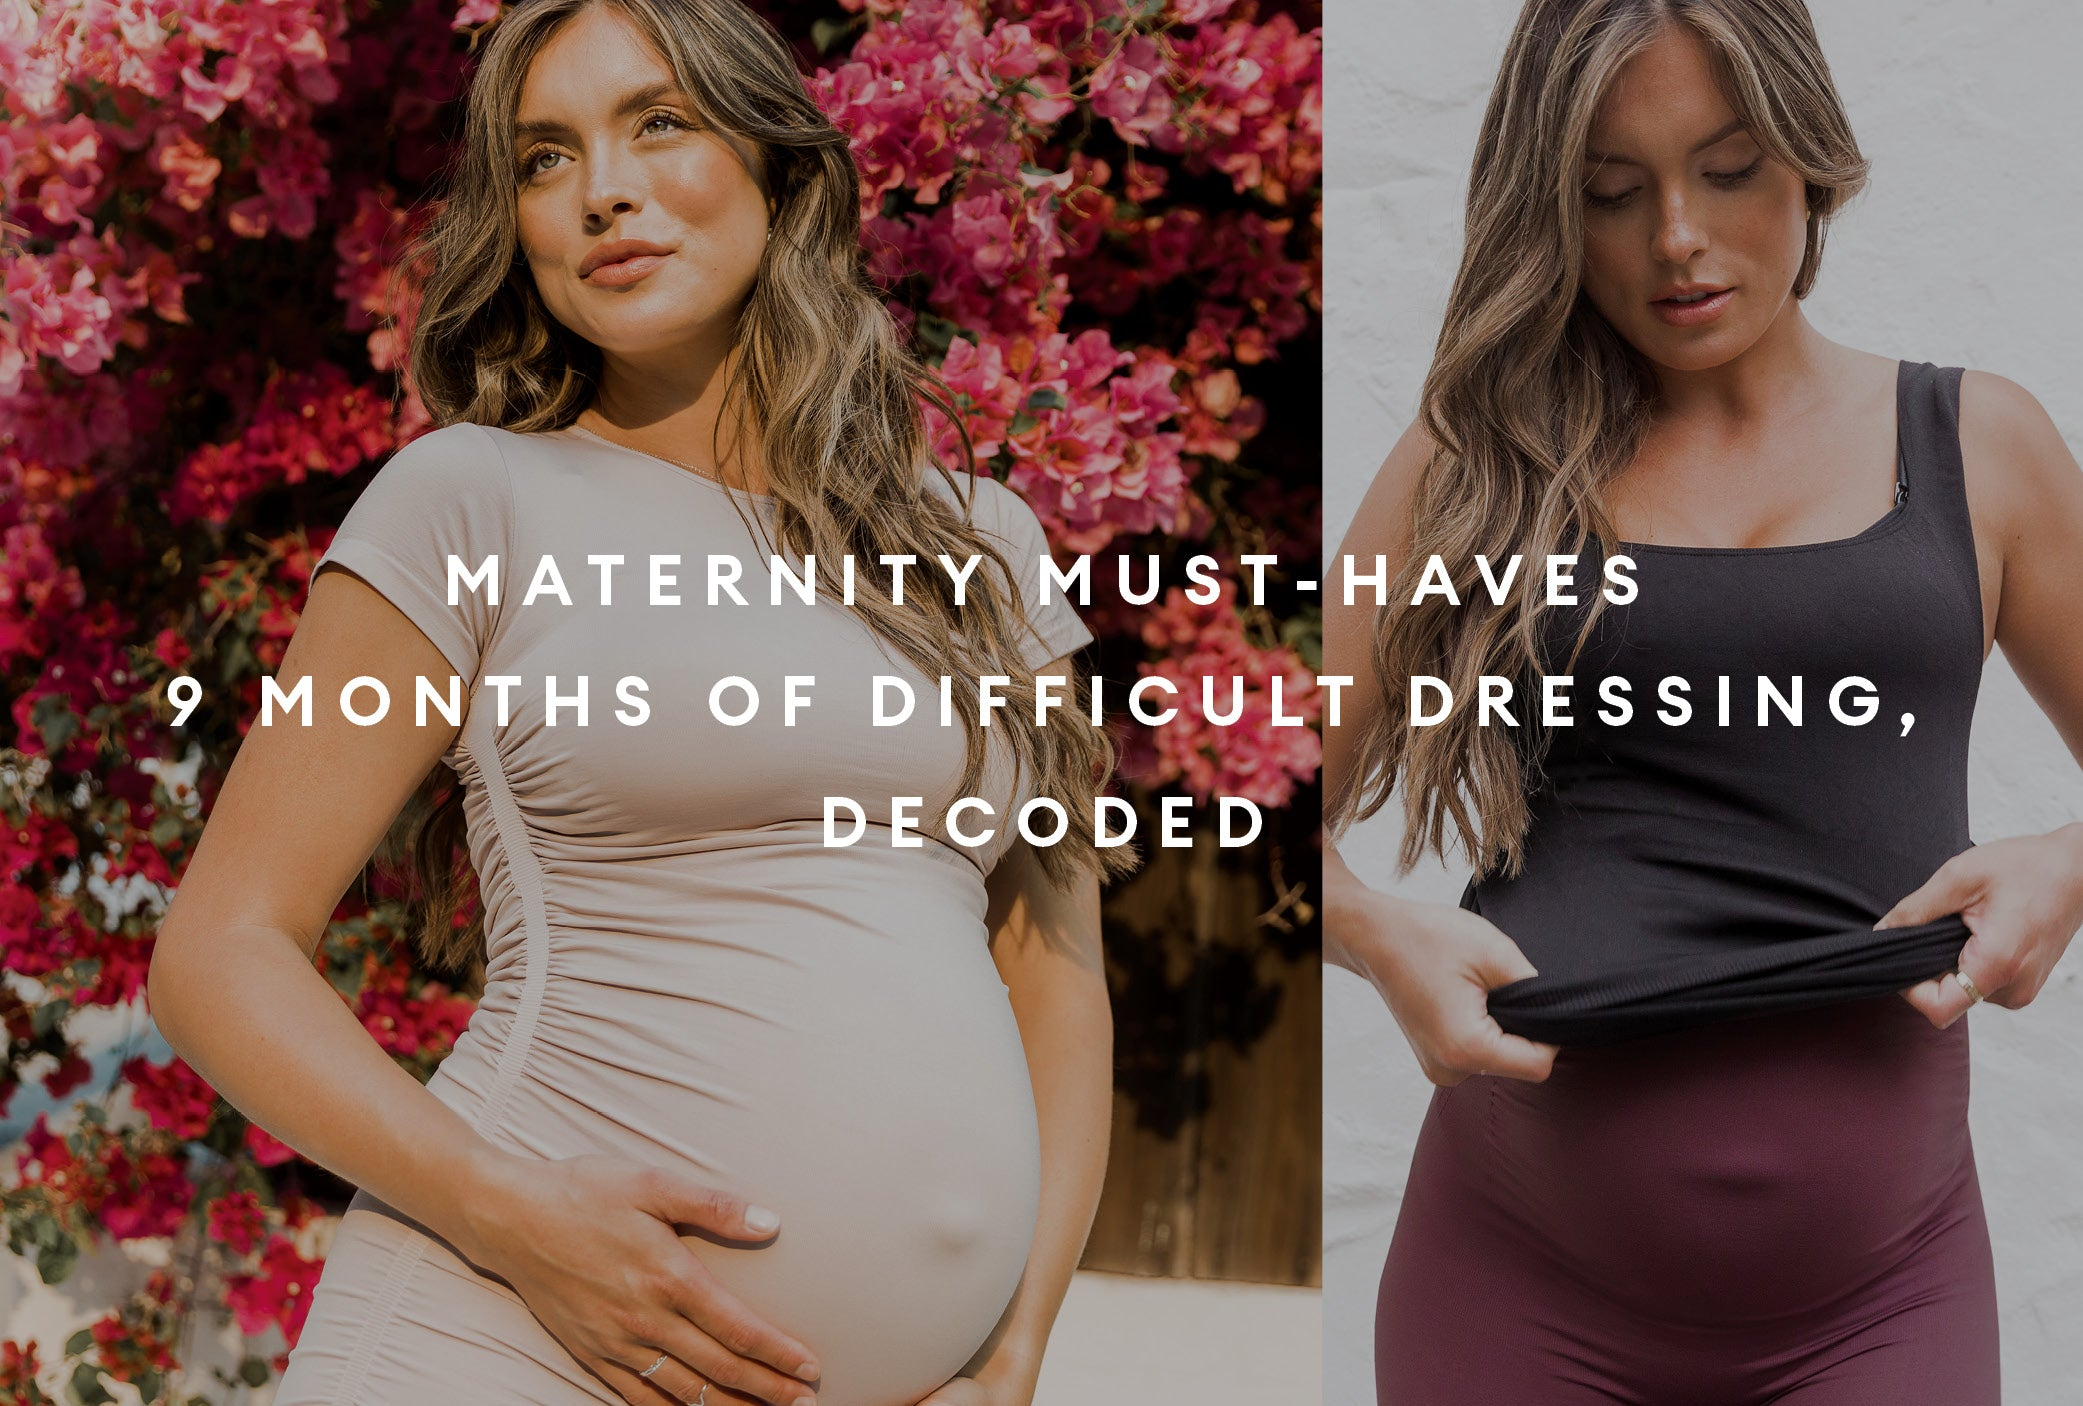 MATERNITY MUST-HAVES                                    9 MONTHS OF DIFFICULT DRESSING, DECODED